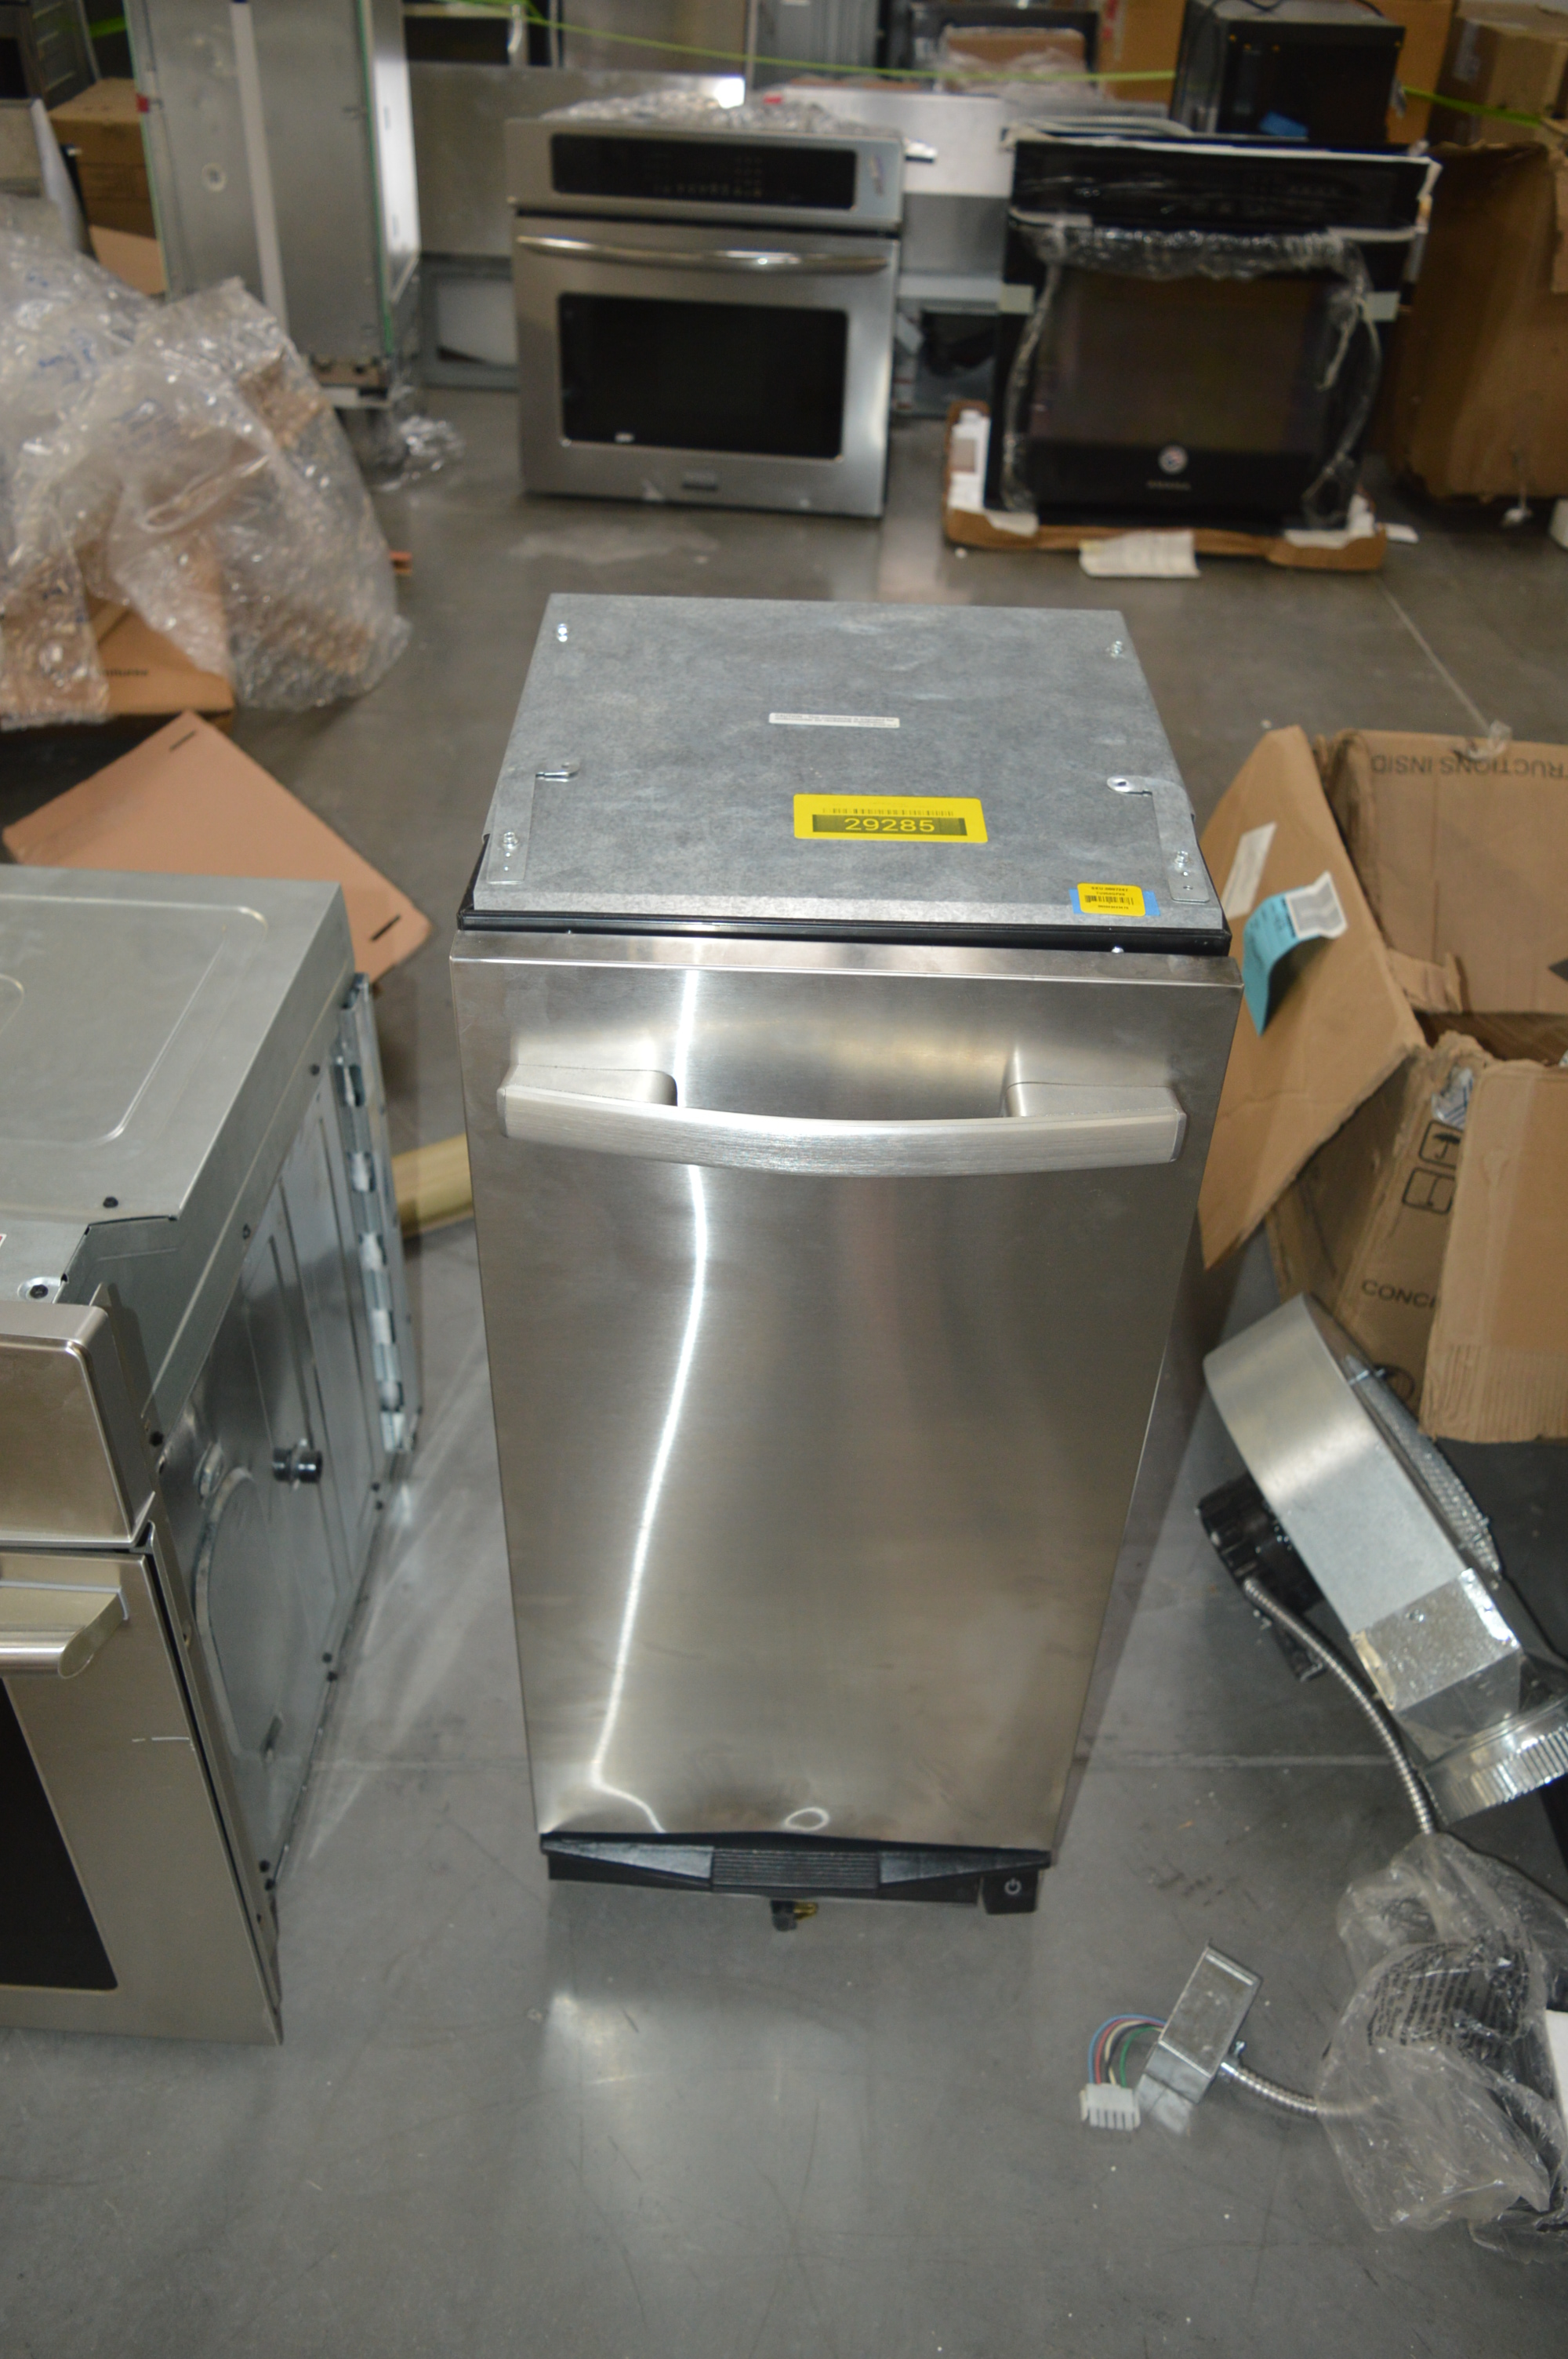 Whirlpool TU950QPXS2 Freestanding Trash Compactor Stainless